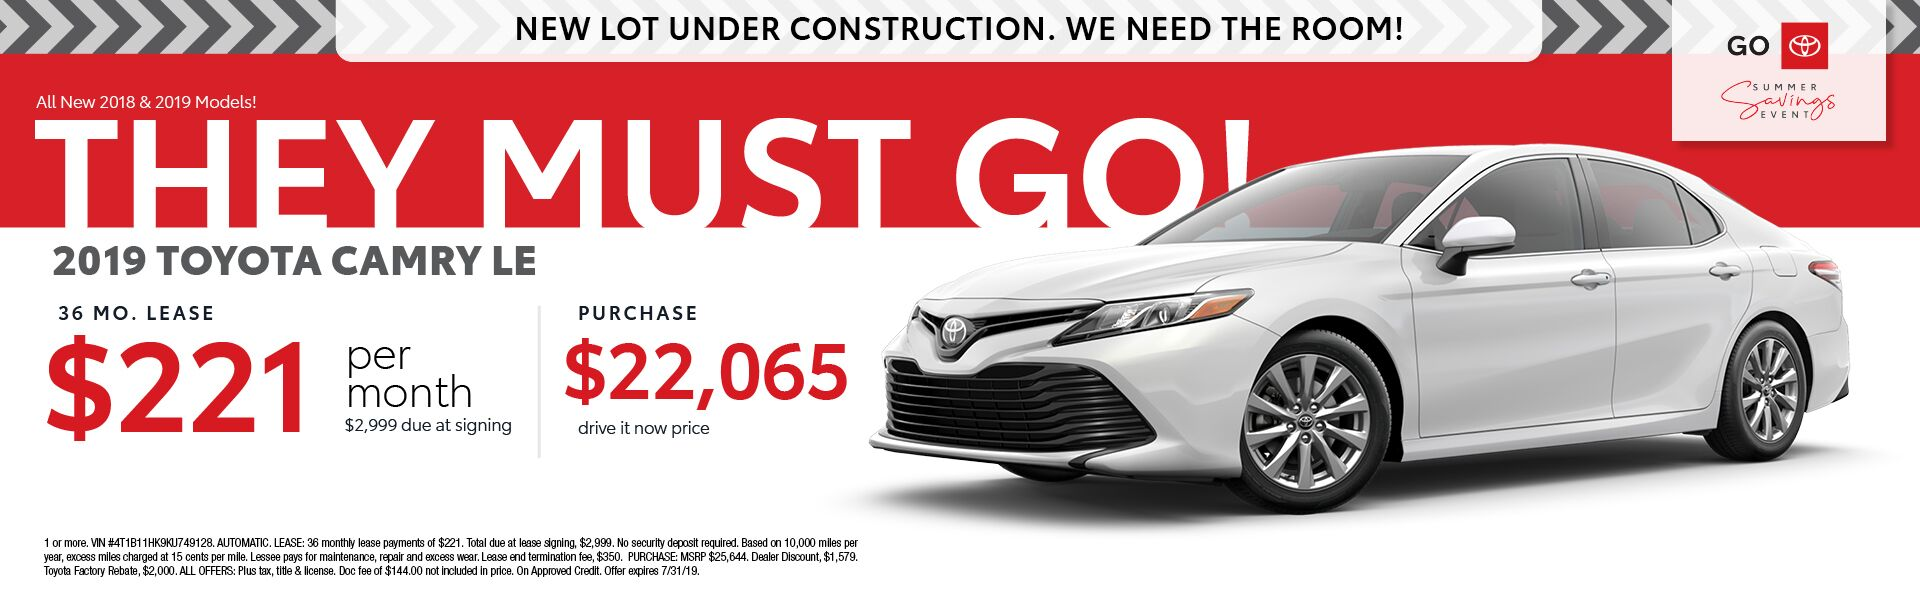 2019 Toyota Camry LE 36 month lease for $221 per month $2,999 due at signing - Purchase for $22,065